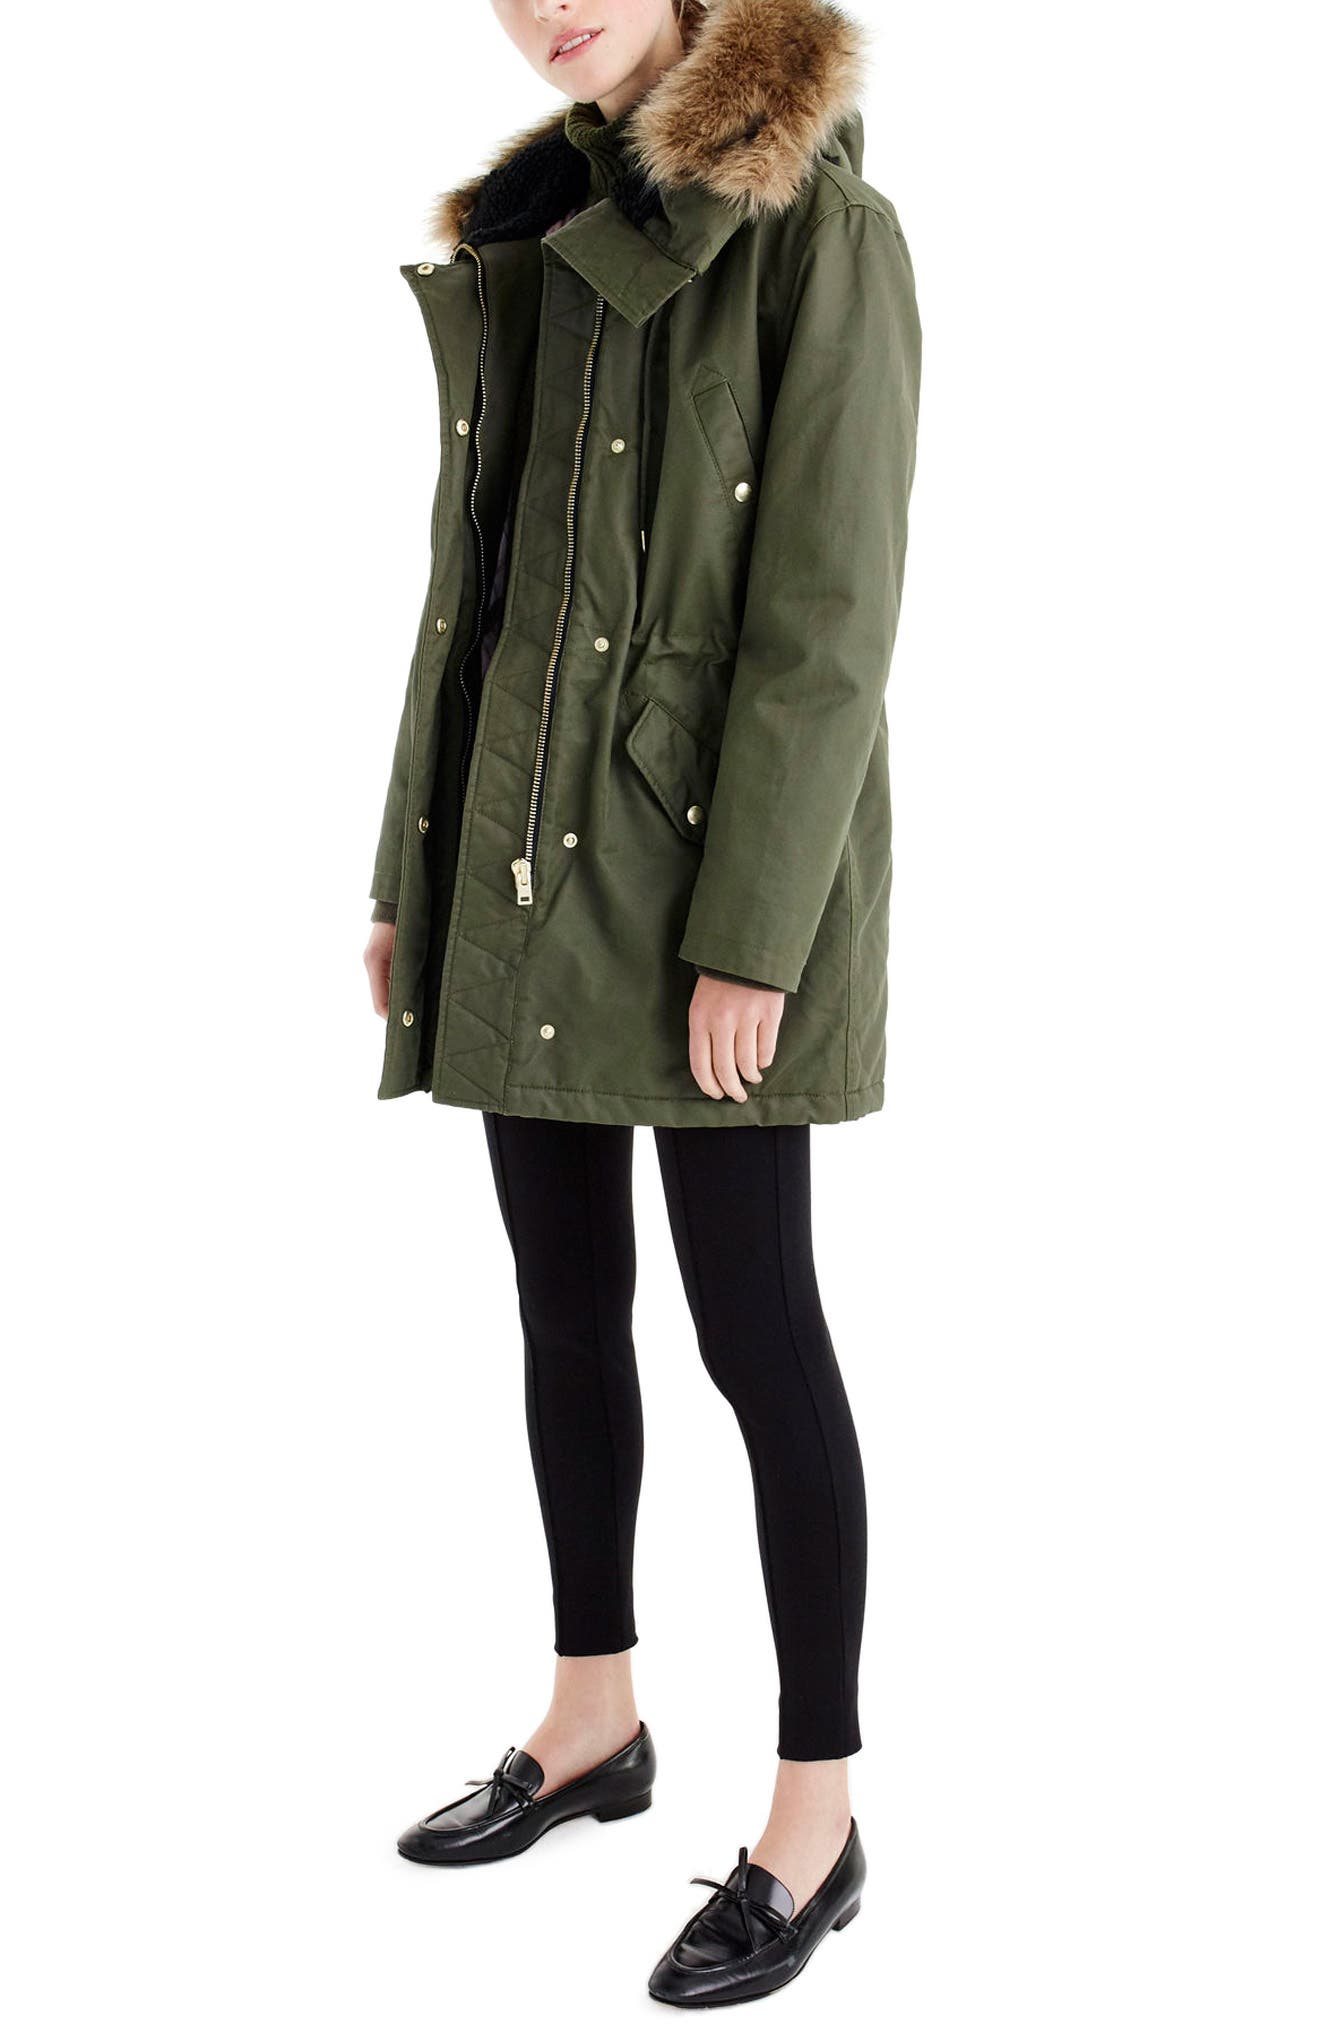 J.Crew Granstorm Water Resistant Hooded Parka with Faux Fur Trim